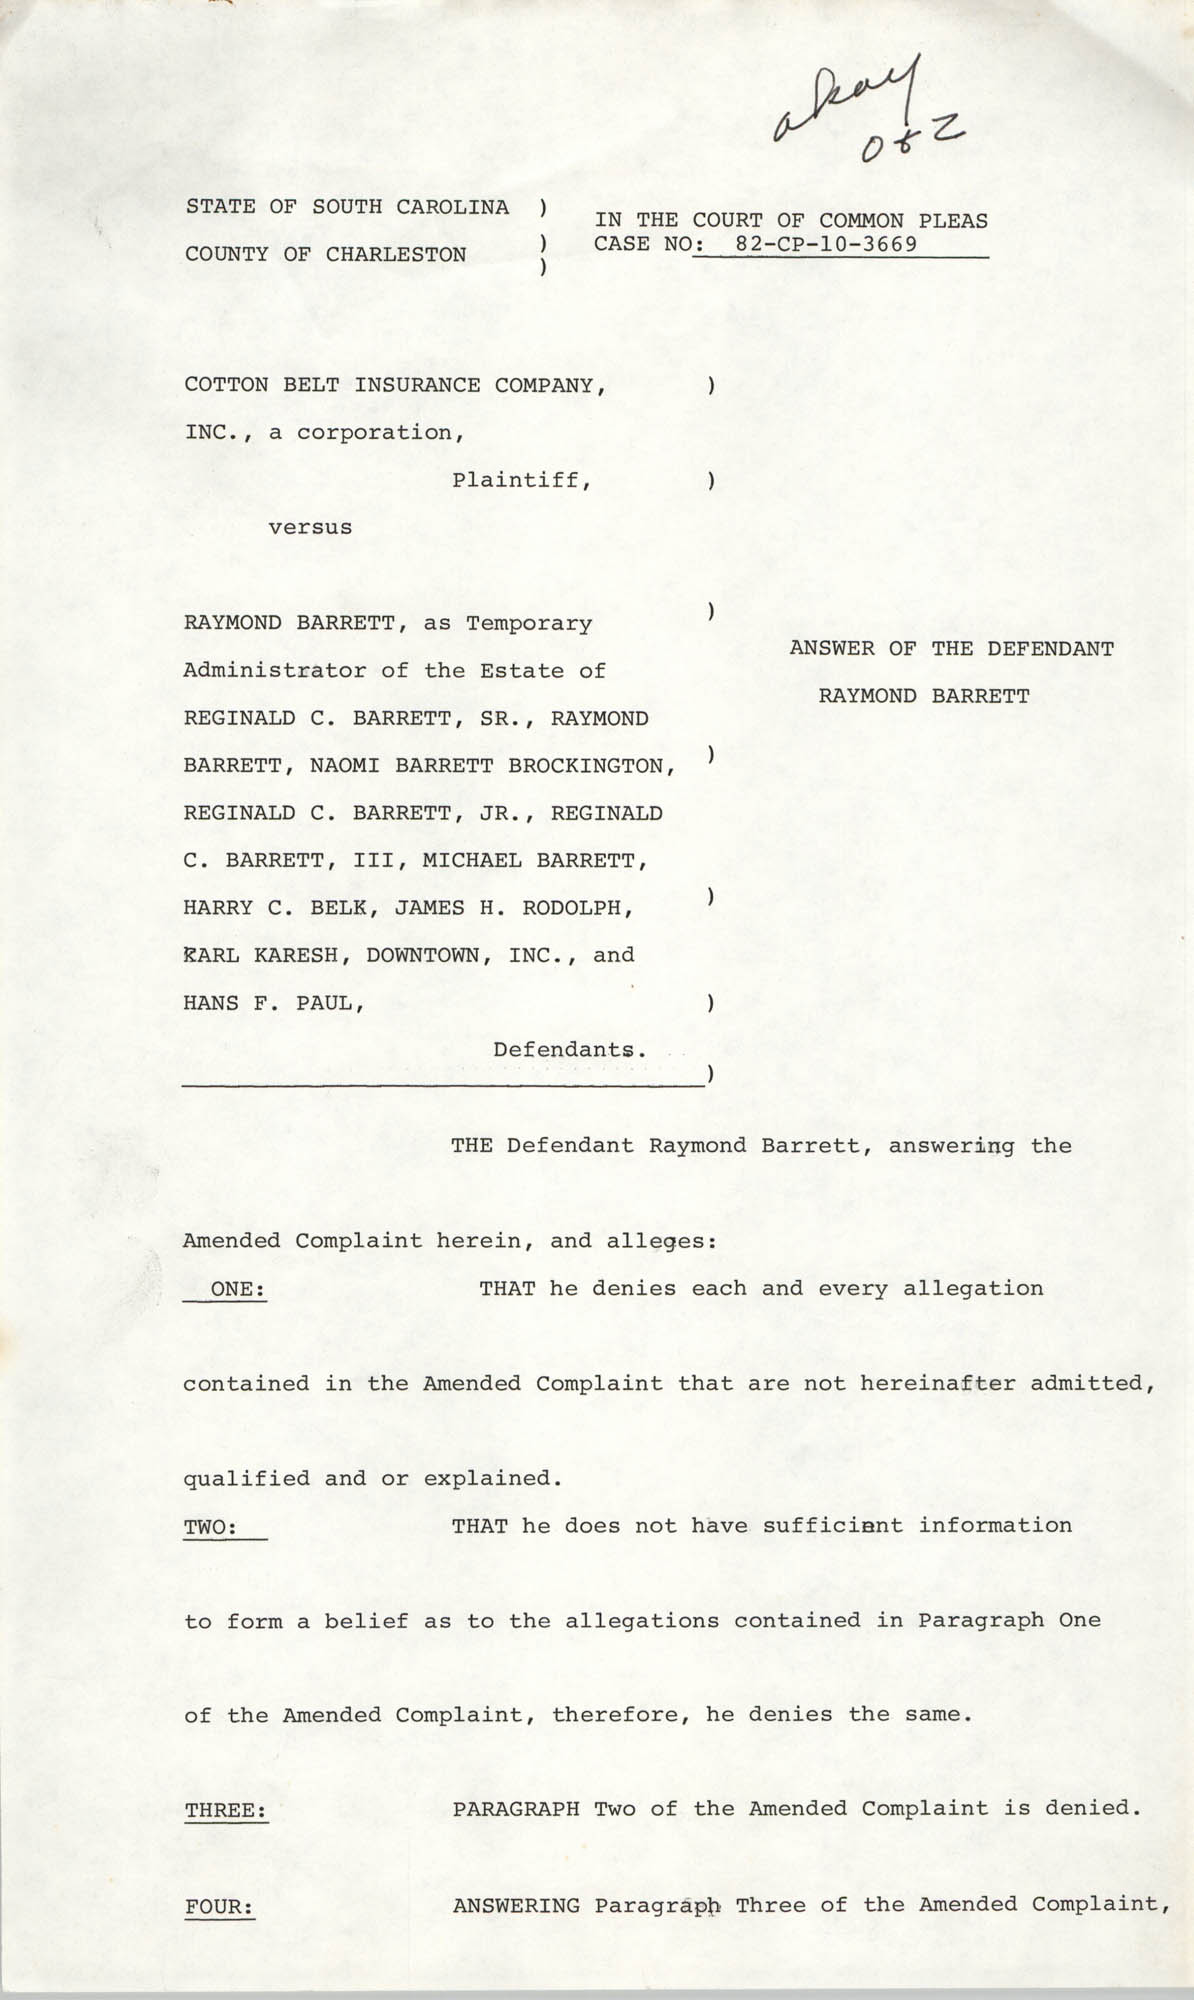 Answer of the Defendant Raymond Barrett, draft, 1985